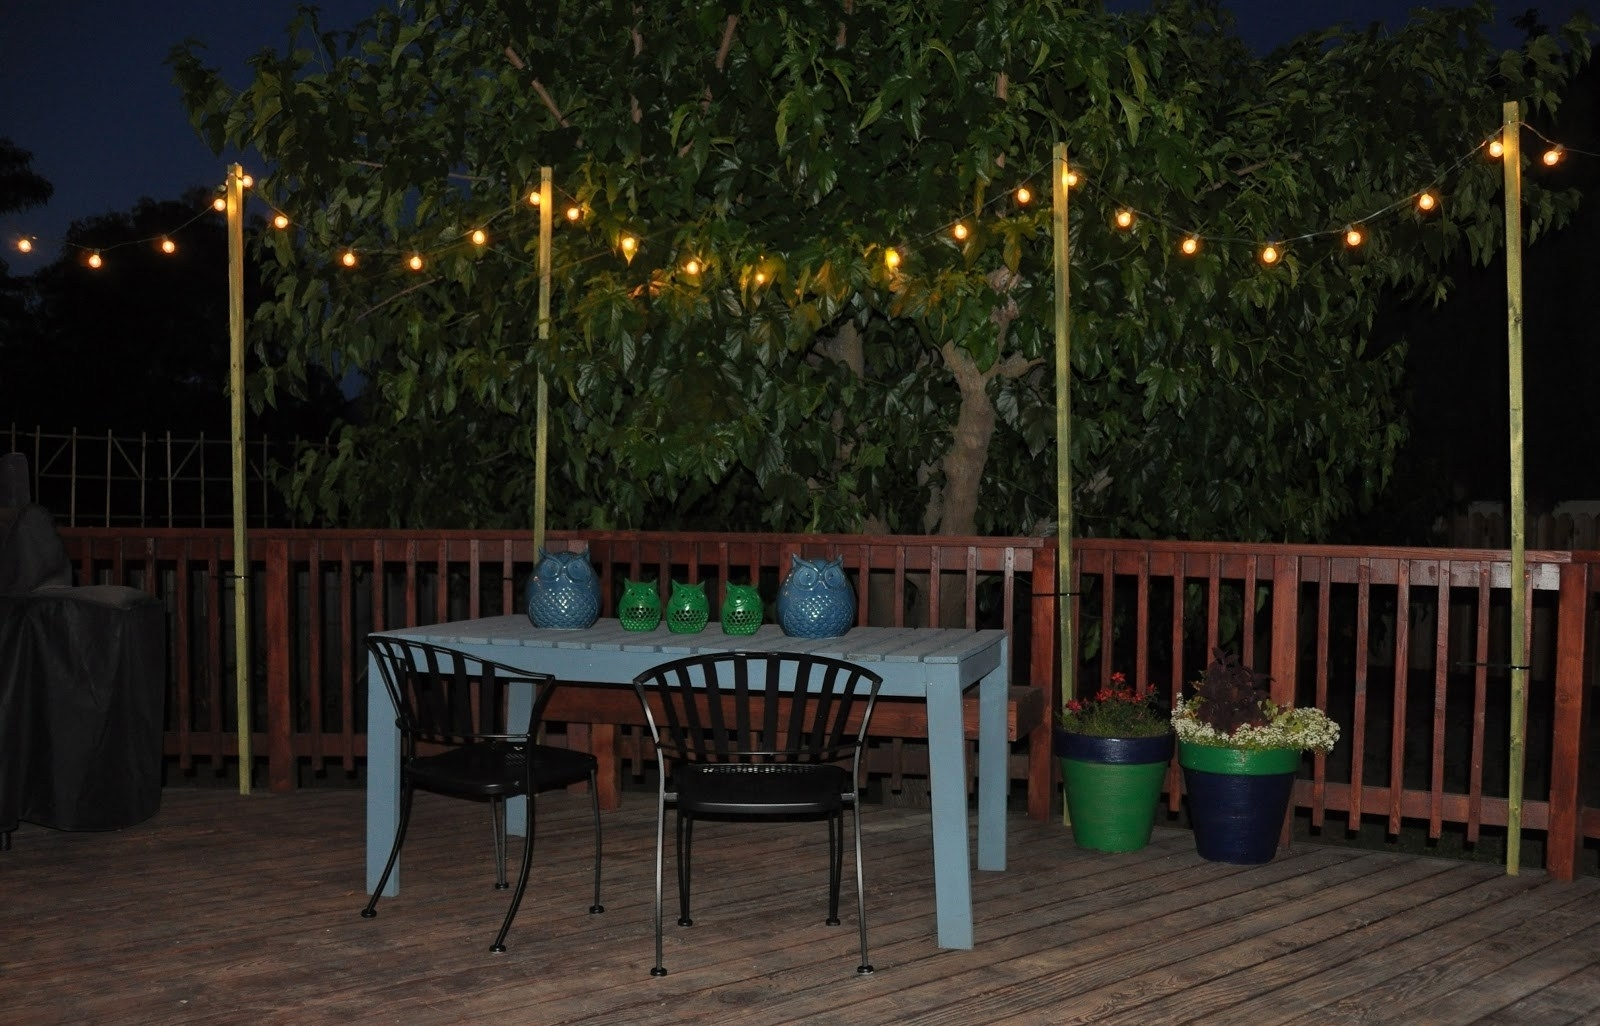 Most Recent Peaceably Patio Lighting Options Ways To Light Up Your Patio To Pertaining To Outdoor Hanging Lanterns For Patio (View 9 of 20)